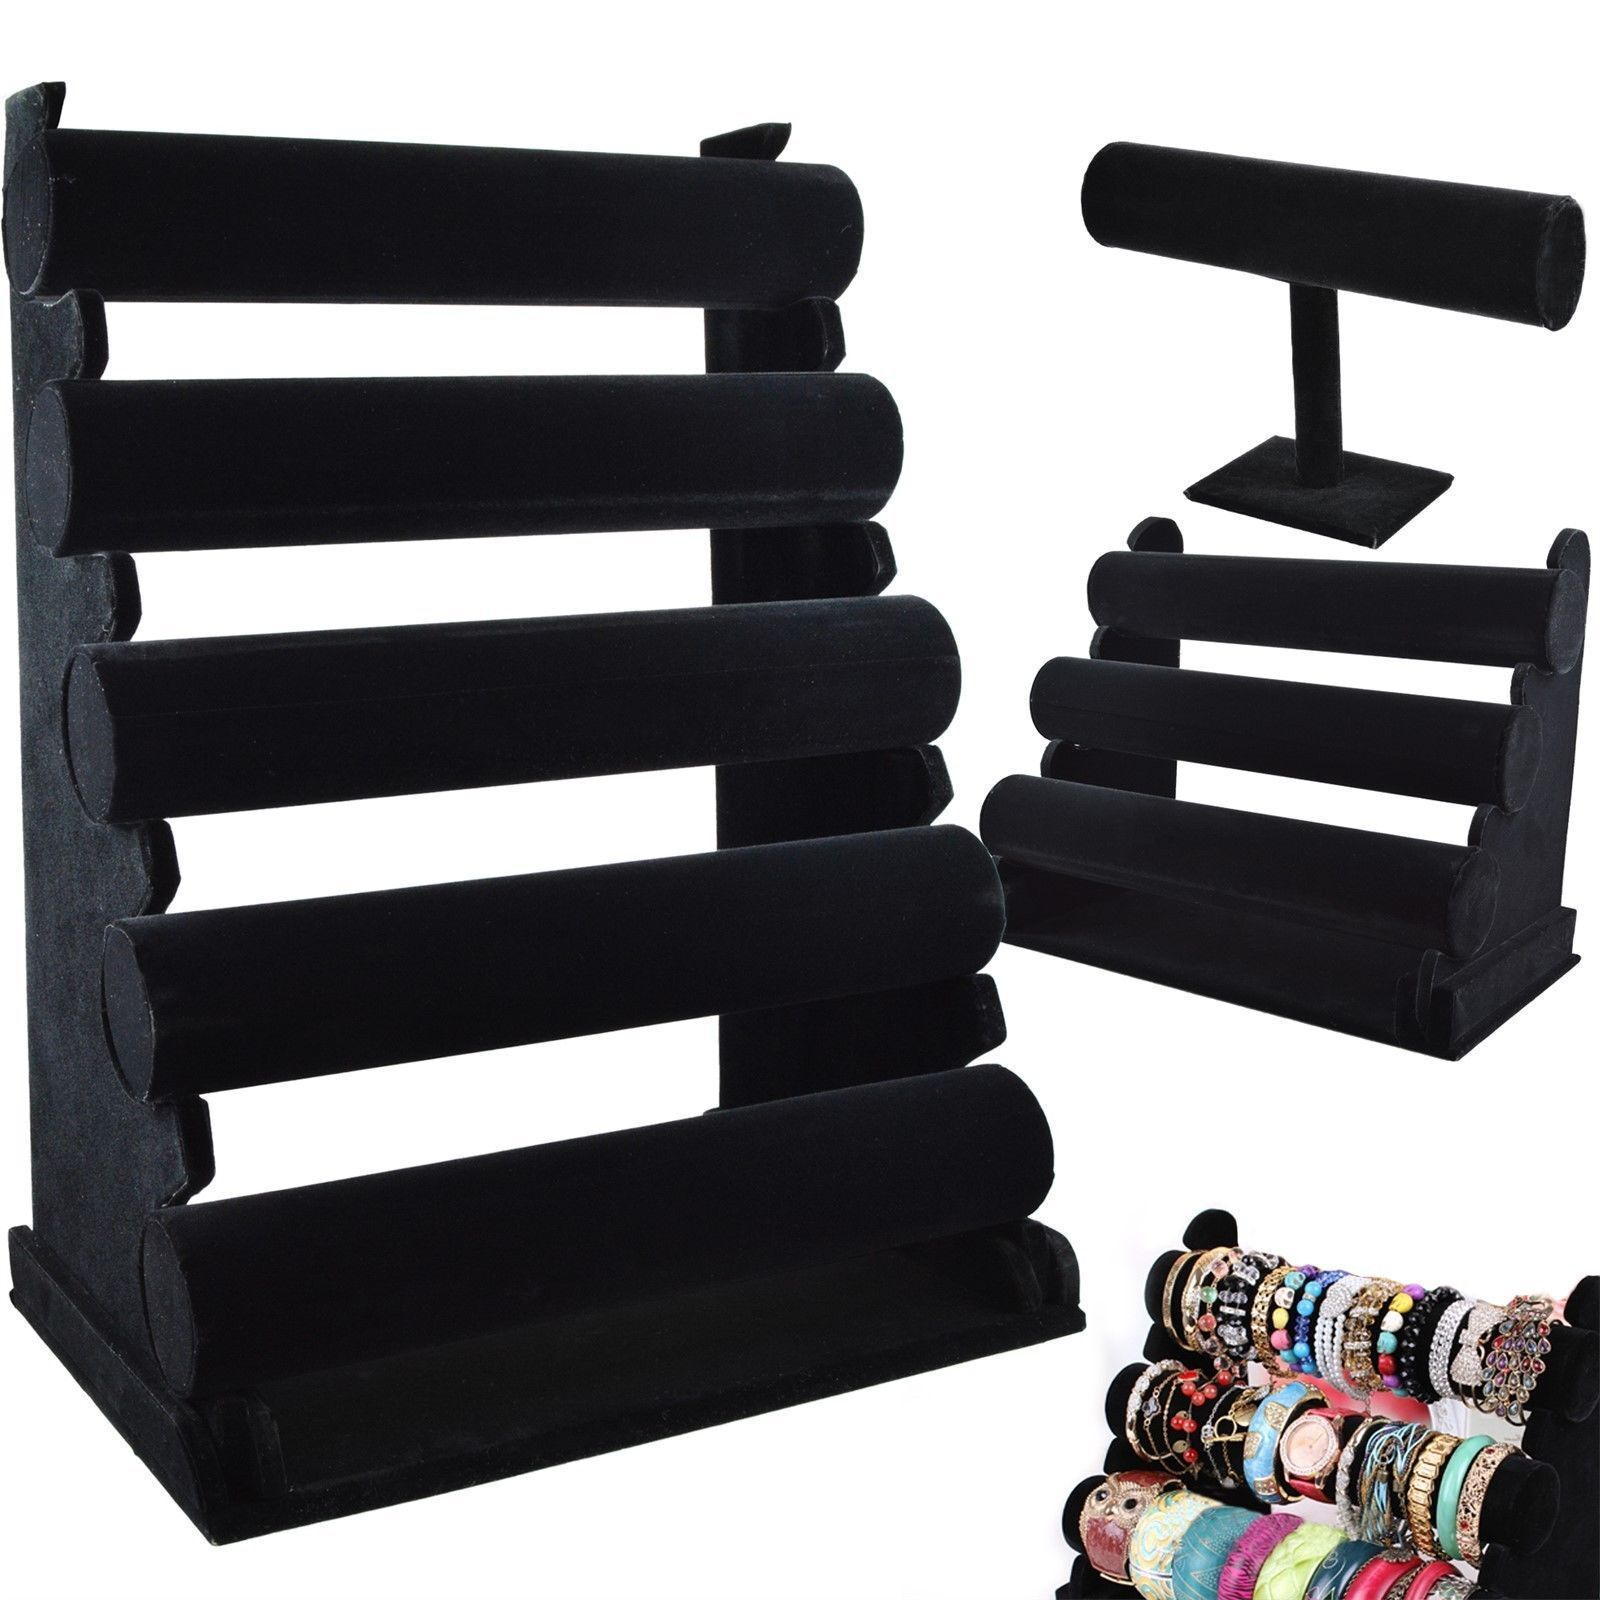 Jewellery - 1 / 3 / 5 TIER BANGLE WATCH BRACELET JEWELLERY DISPLAY STAND QUALITY VELVET RACK